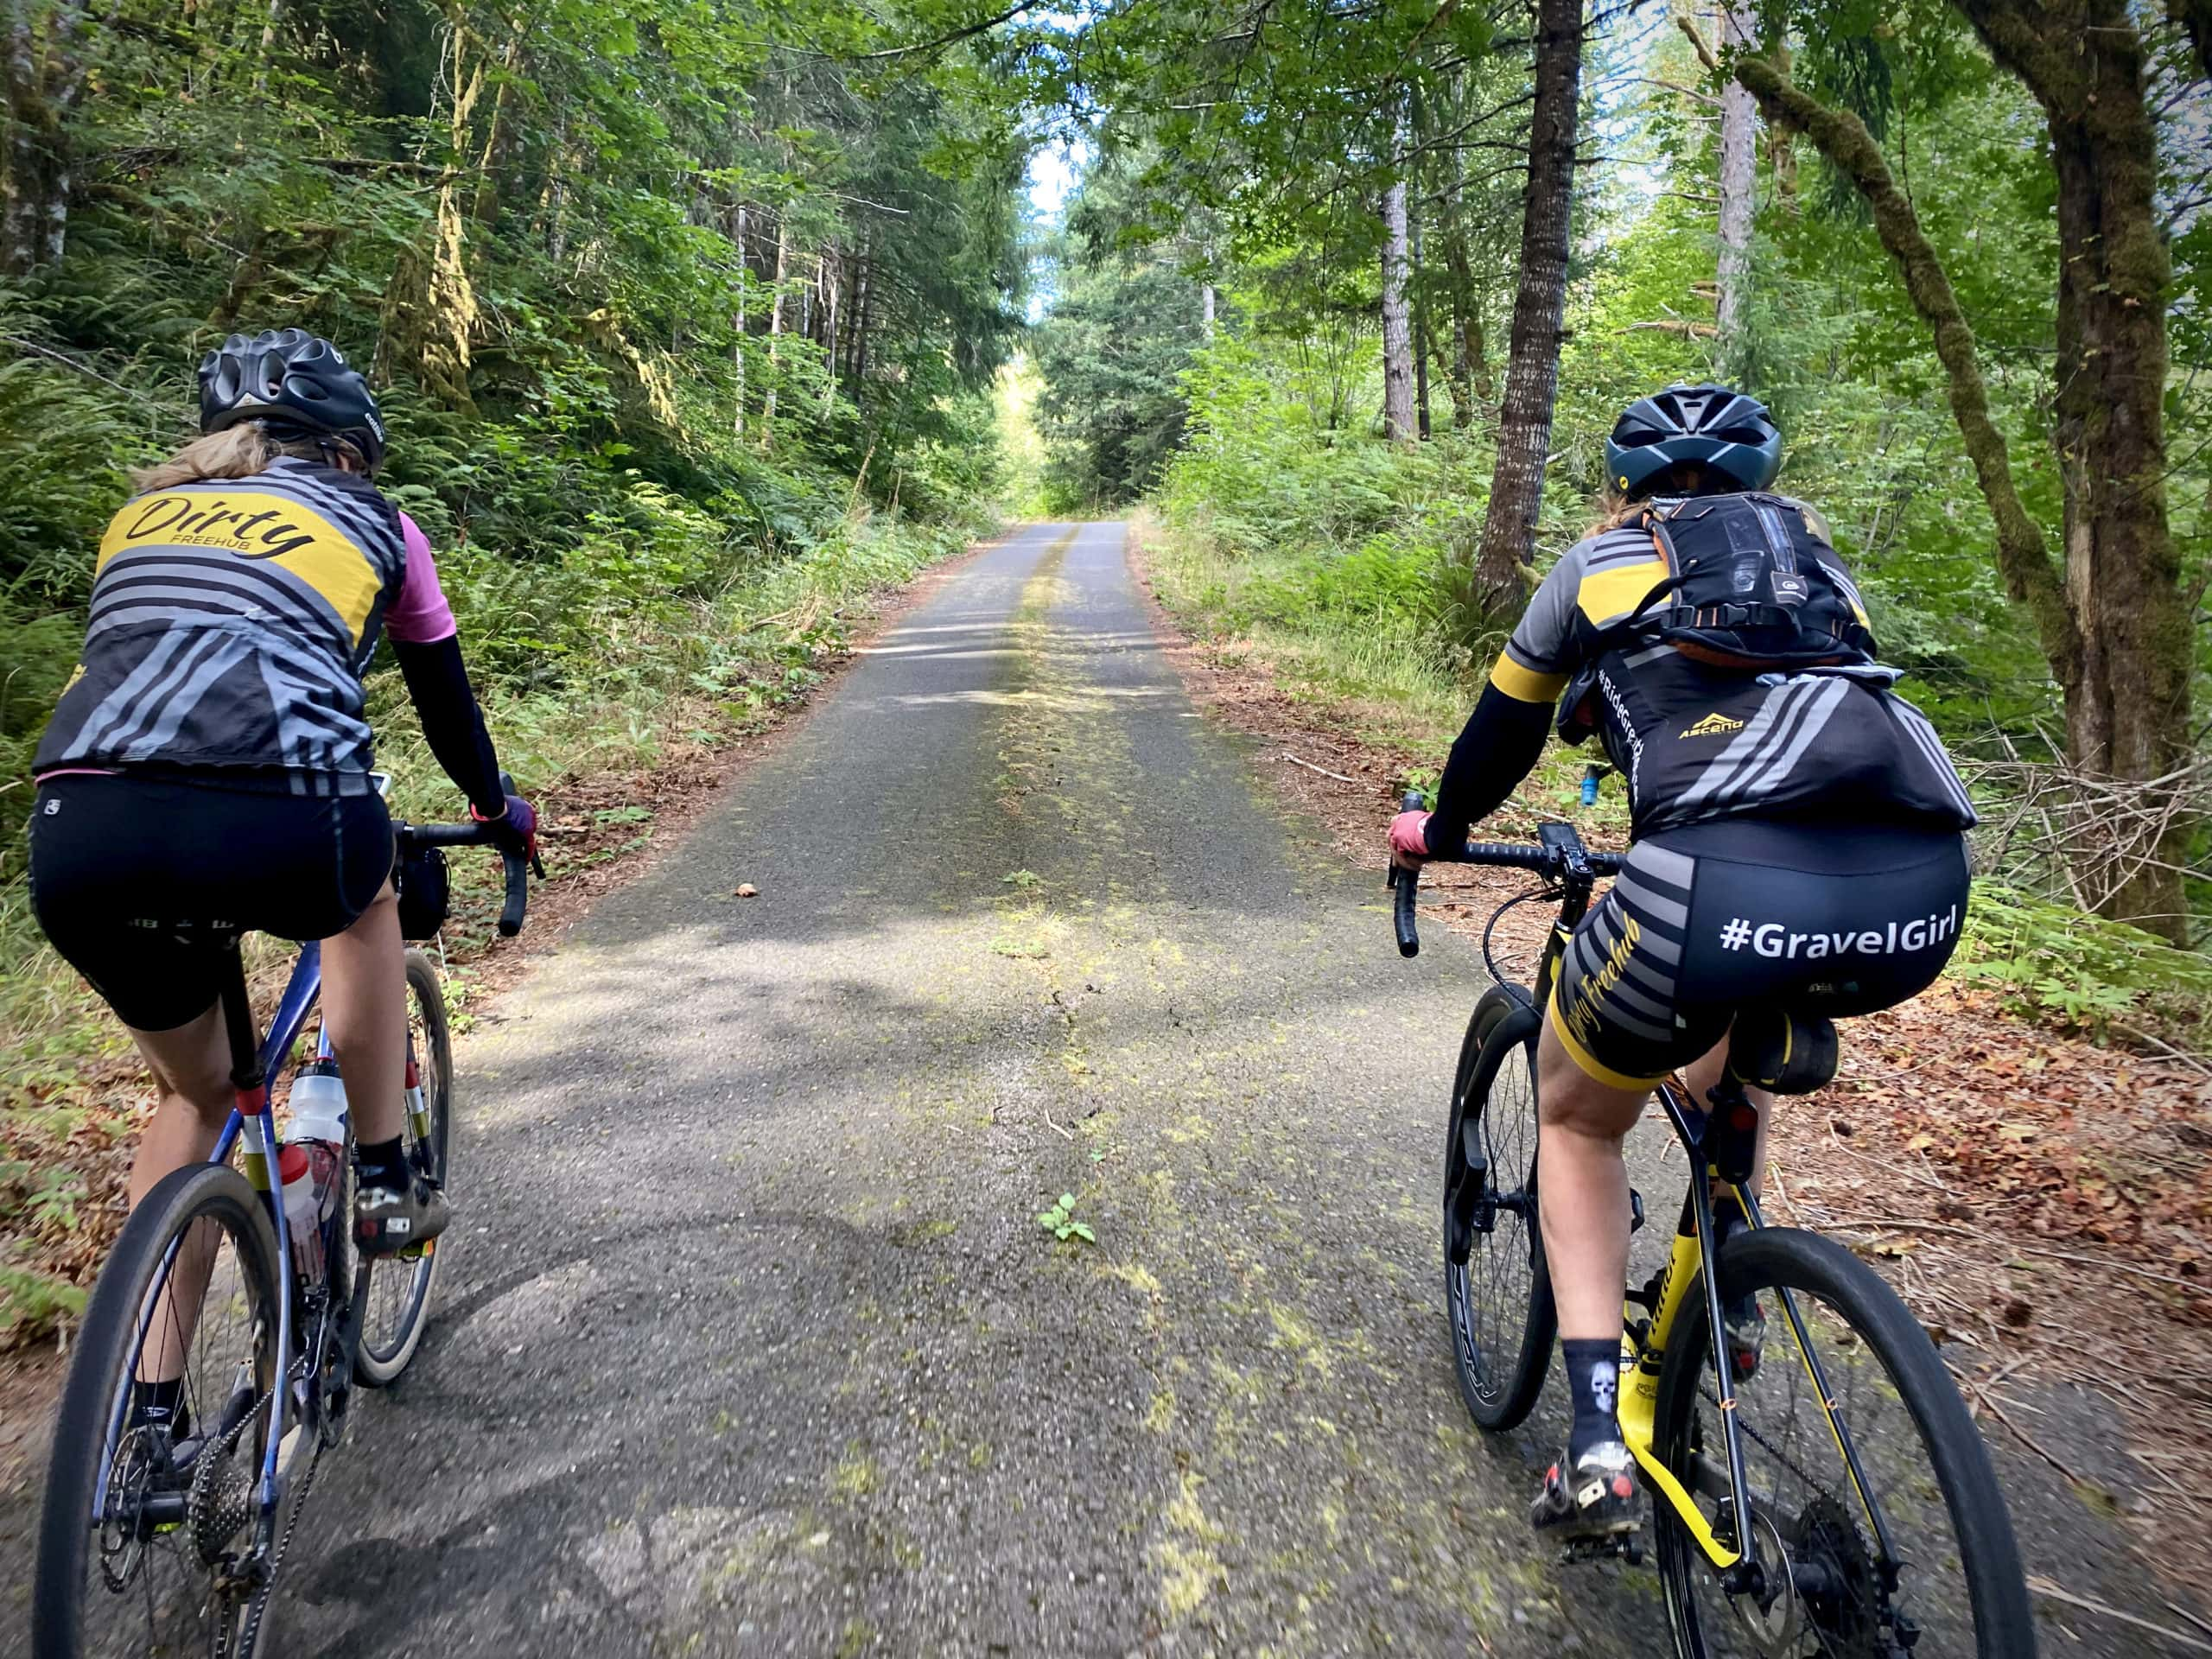 Gravel Girls climbing the paved section of NF 1746 in the Willamette National Forest.